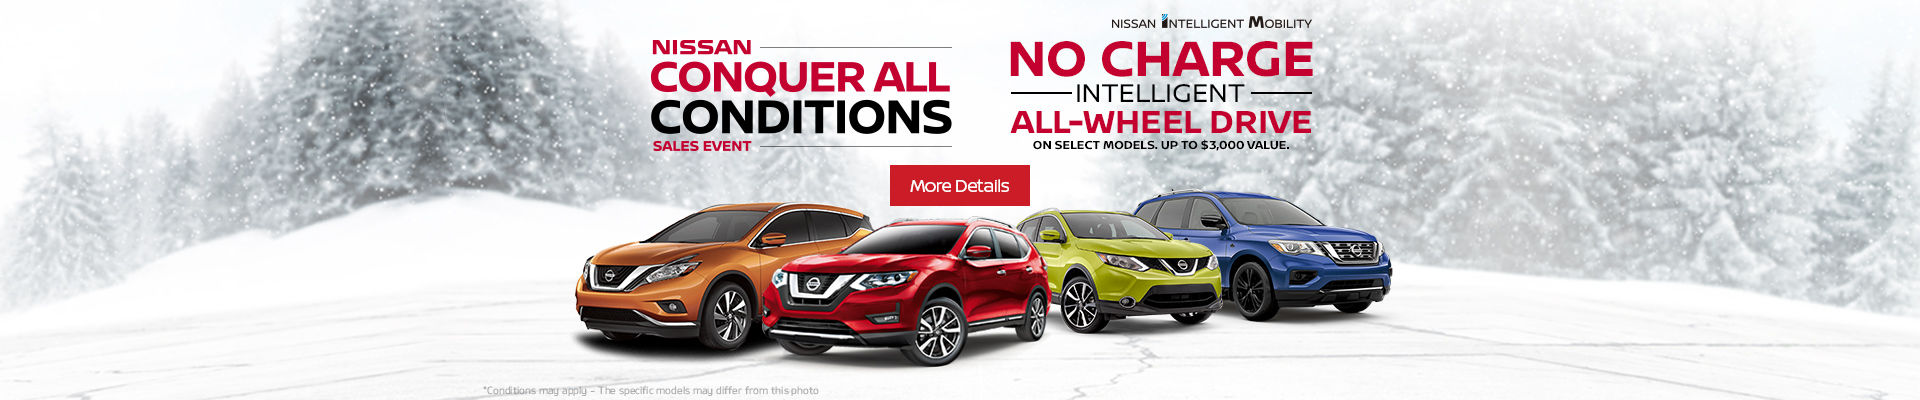 Nissan Conquer all conditions